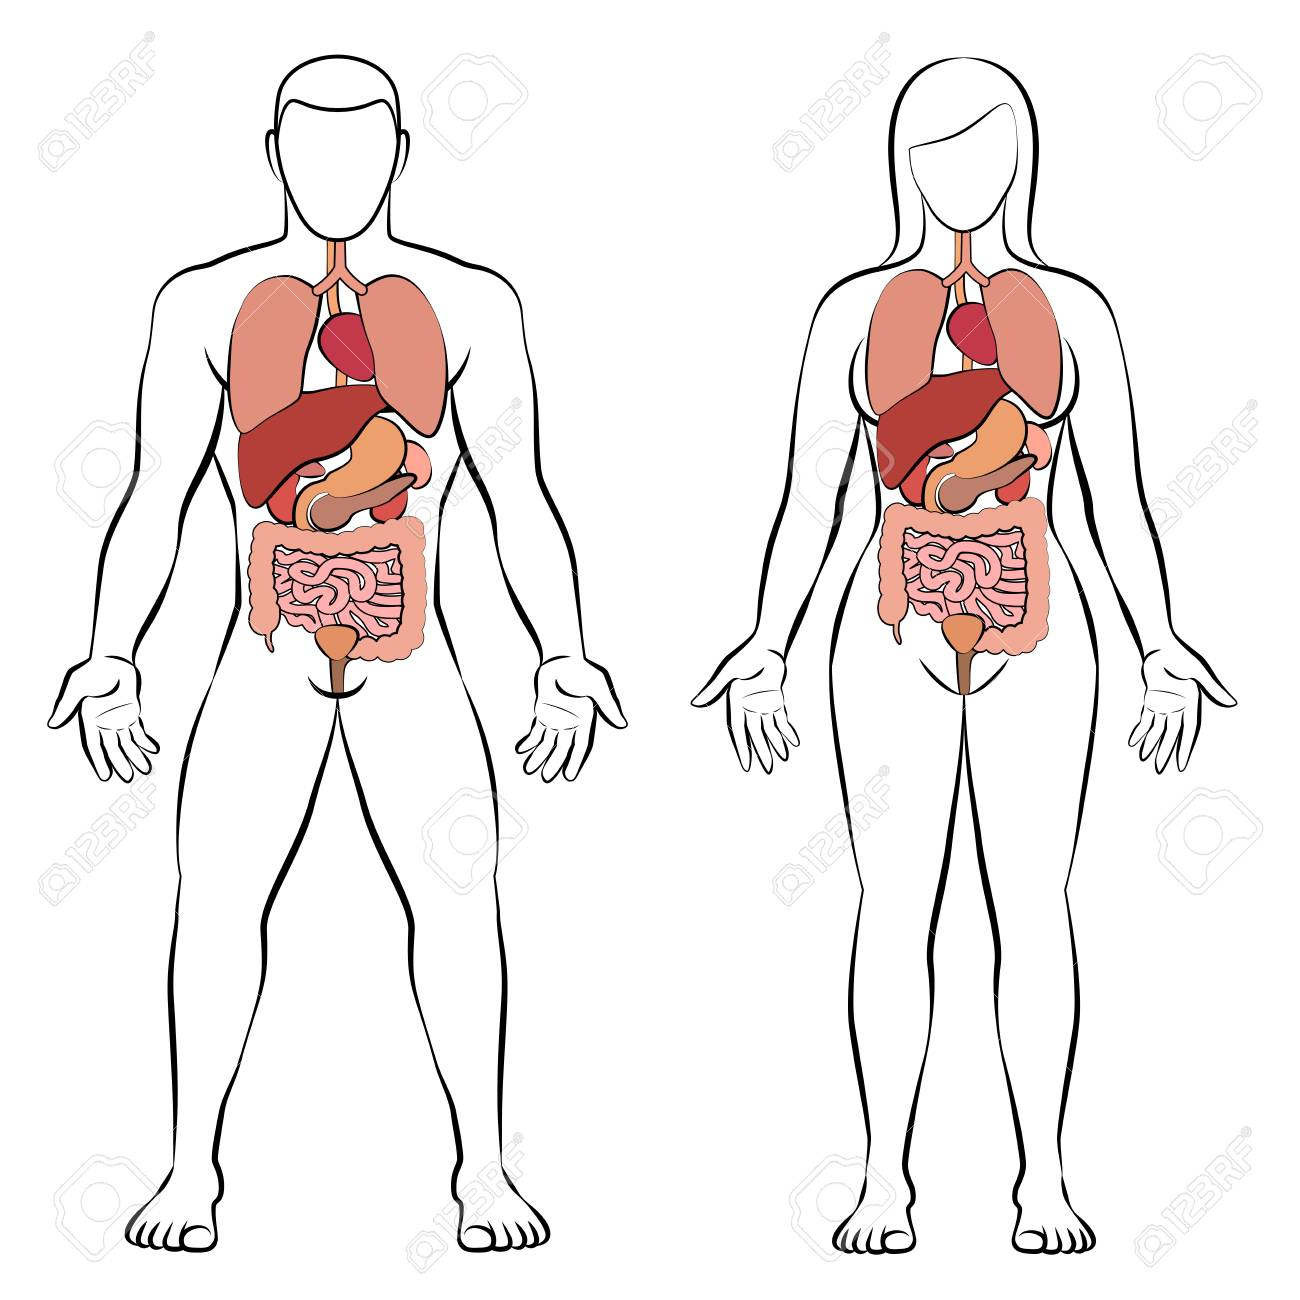 hight resolution of digestive tract with internal organs male and female body schematic human anatomy illustration